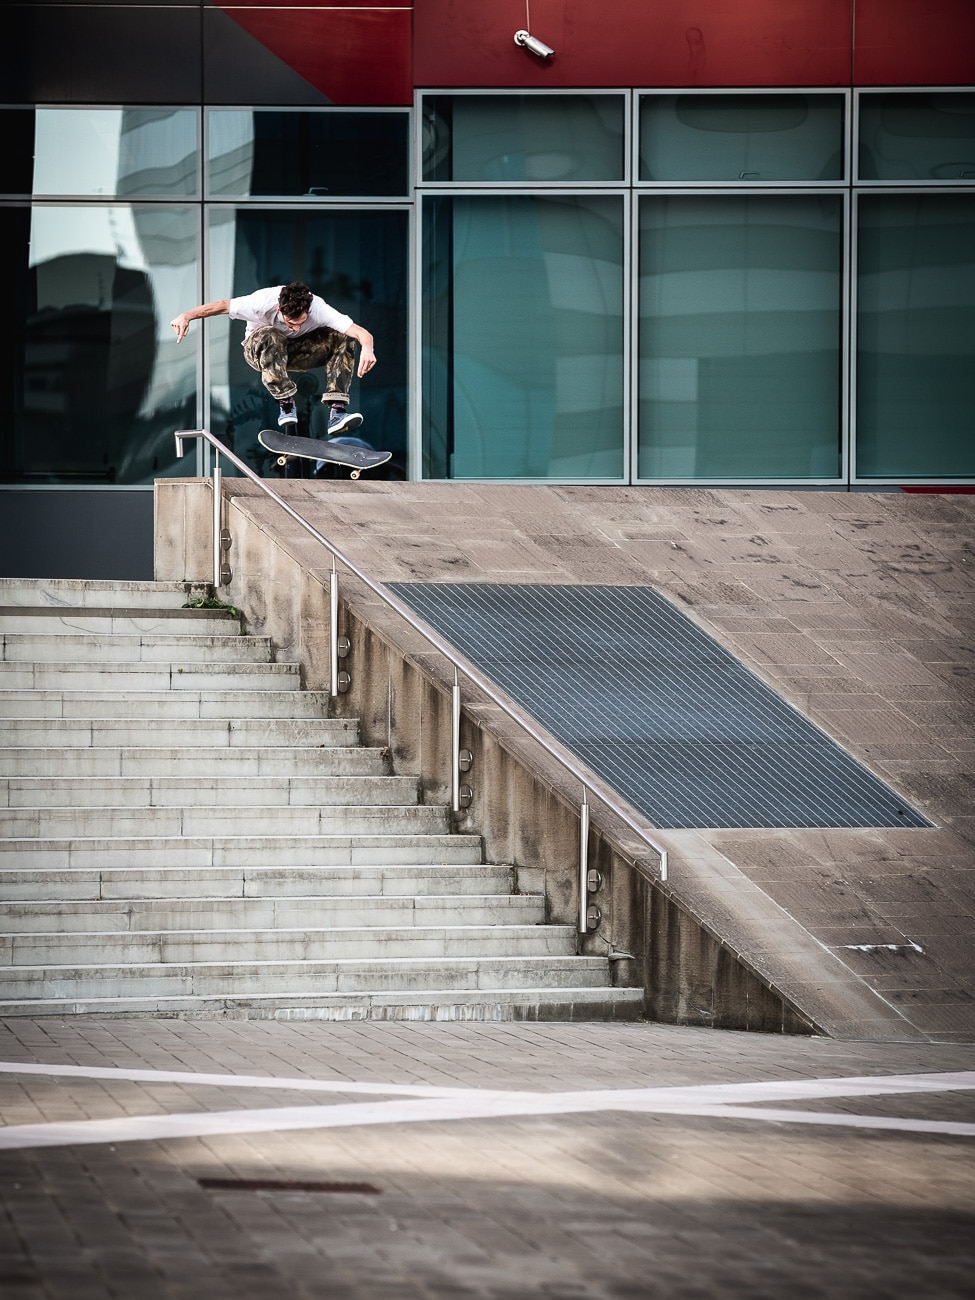 deaf-chips-irregularskatemag-milano-tour-hannes-mautner-photo-32